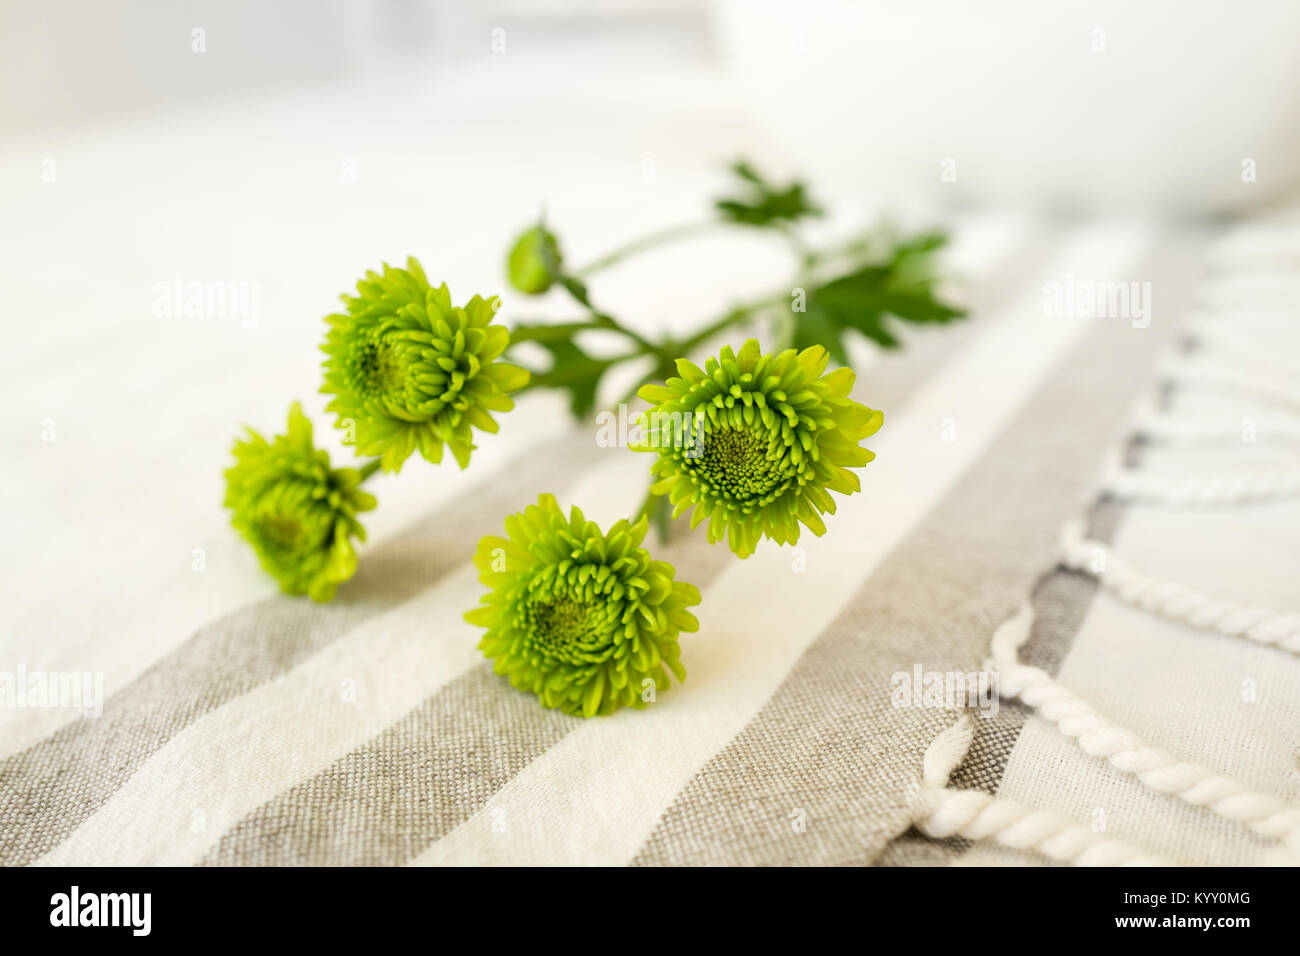 Close-up of flowers on bed - Stock Image